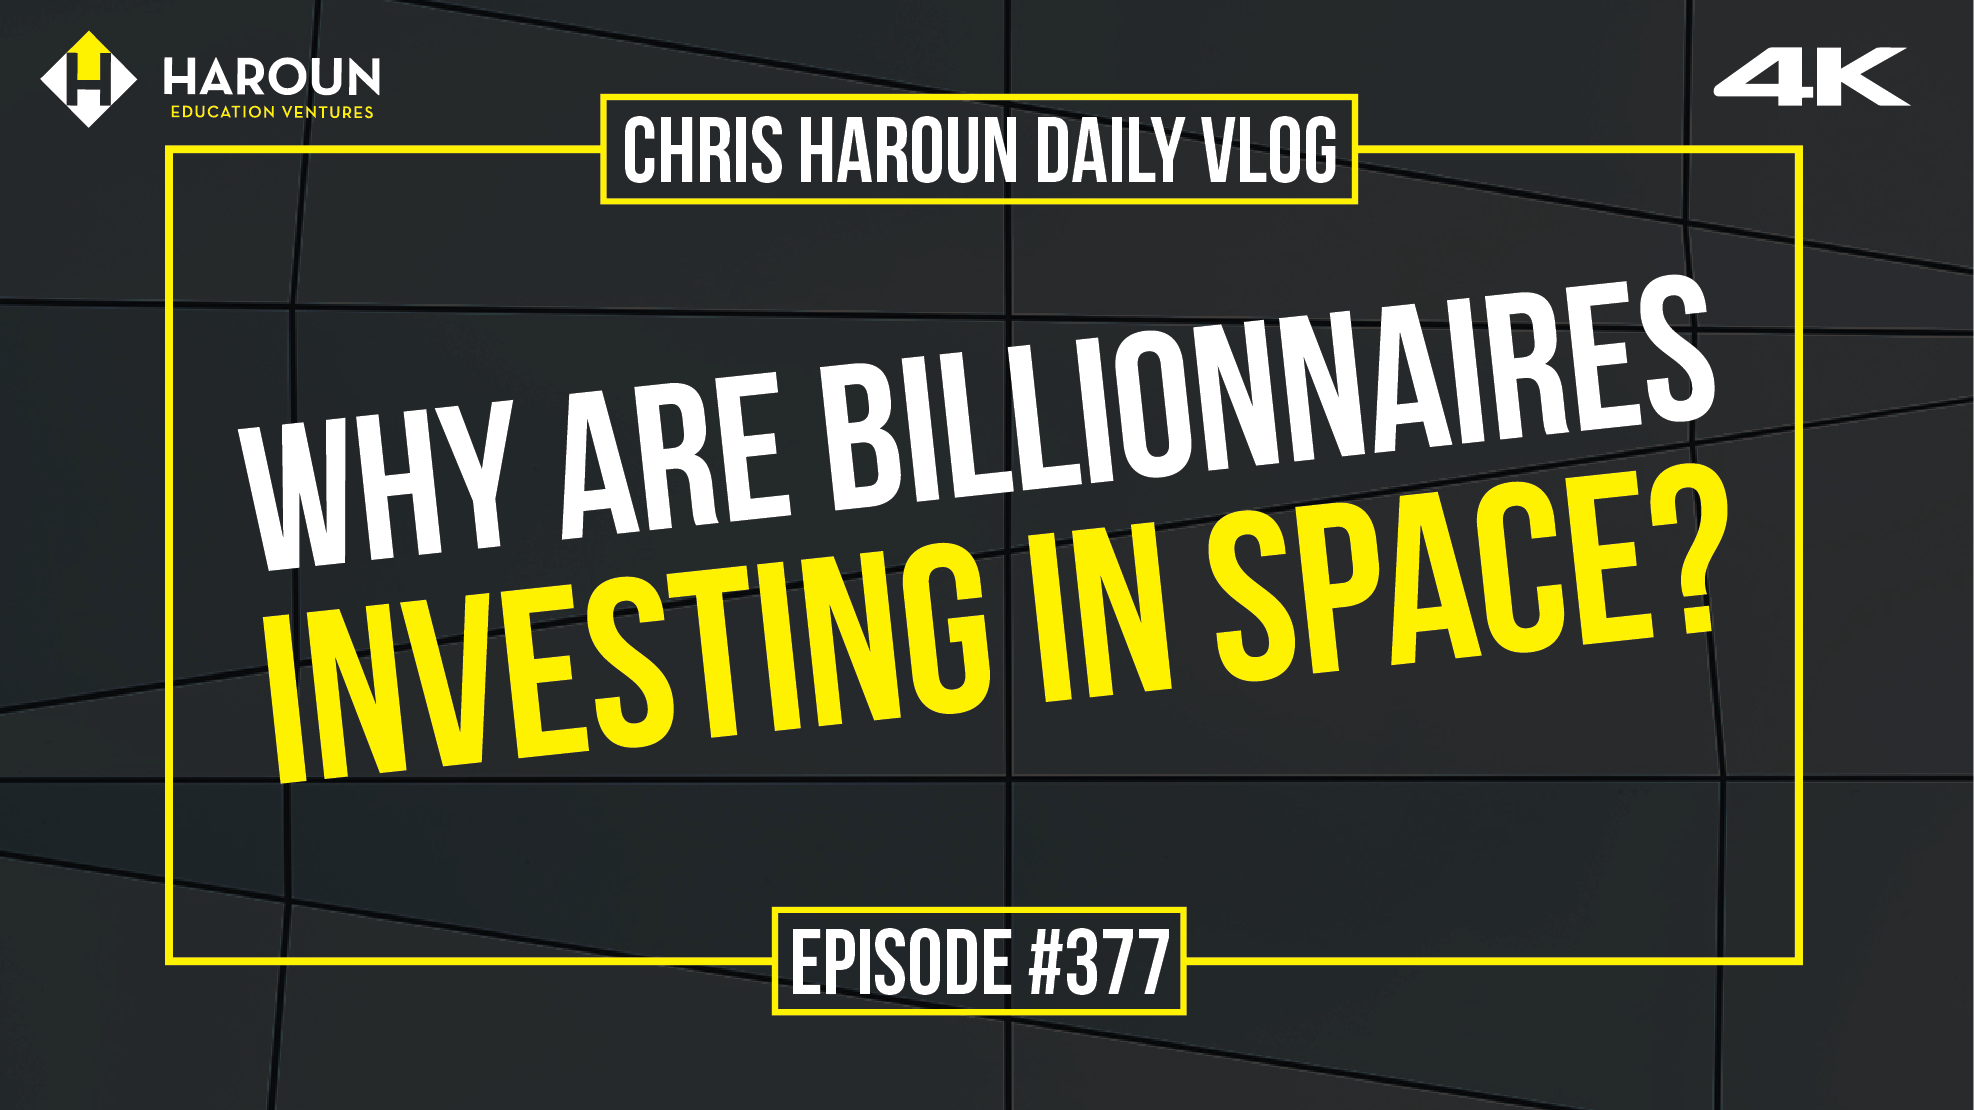 VLOG_377_8_12_2019_Why Are Billionnaires Investing in Space?.png